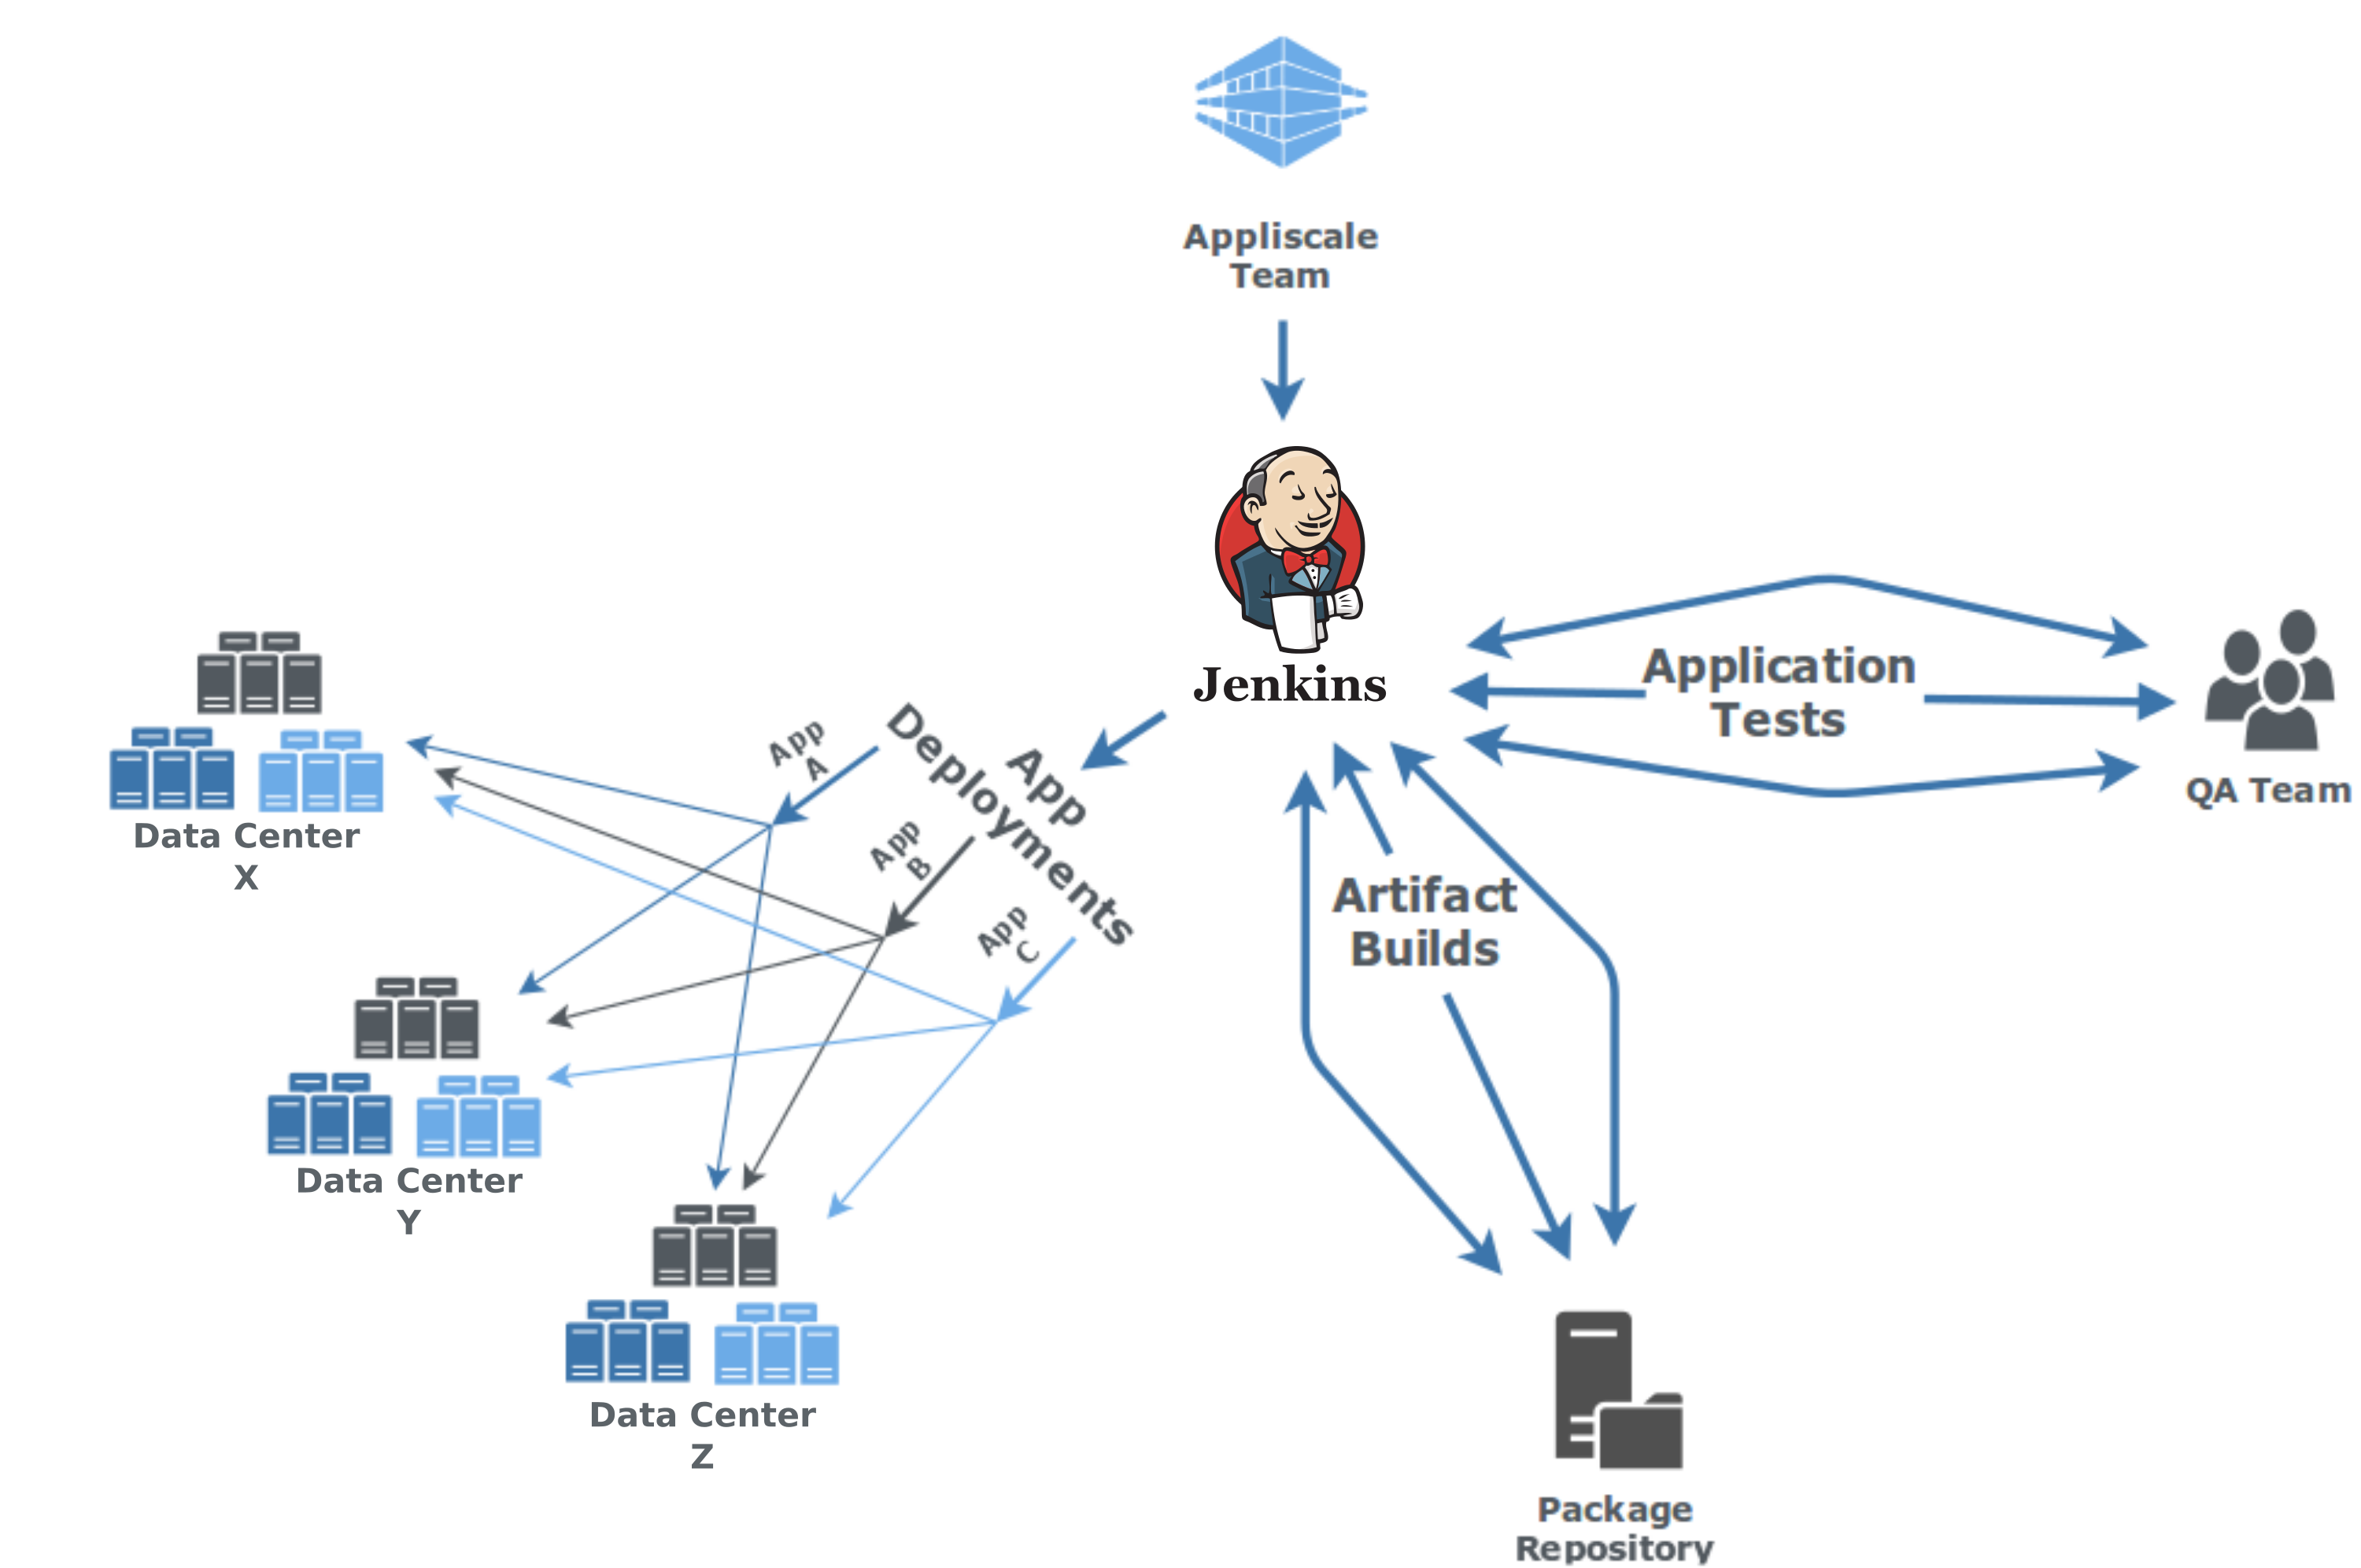 Analysis of Jenkins for DevOp